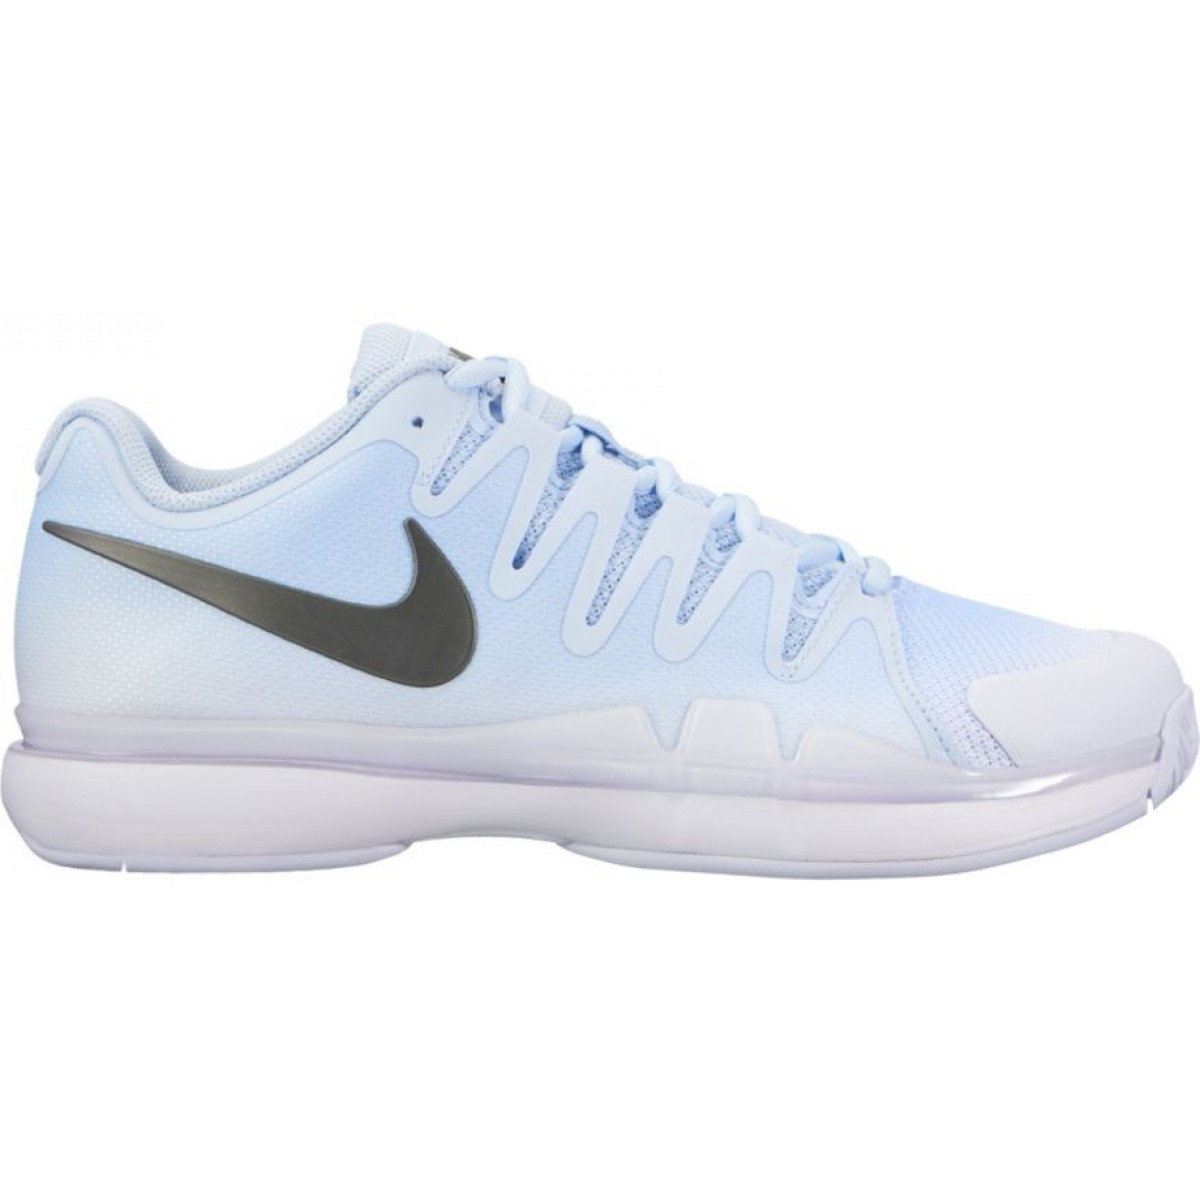 Zoom Hiver Tour 9 Chaussures 2017 Femme 5 Vapor Nike gx0nY7YUE